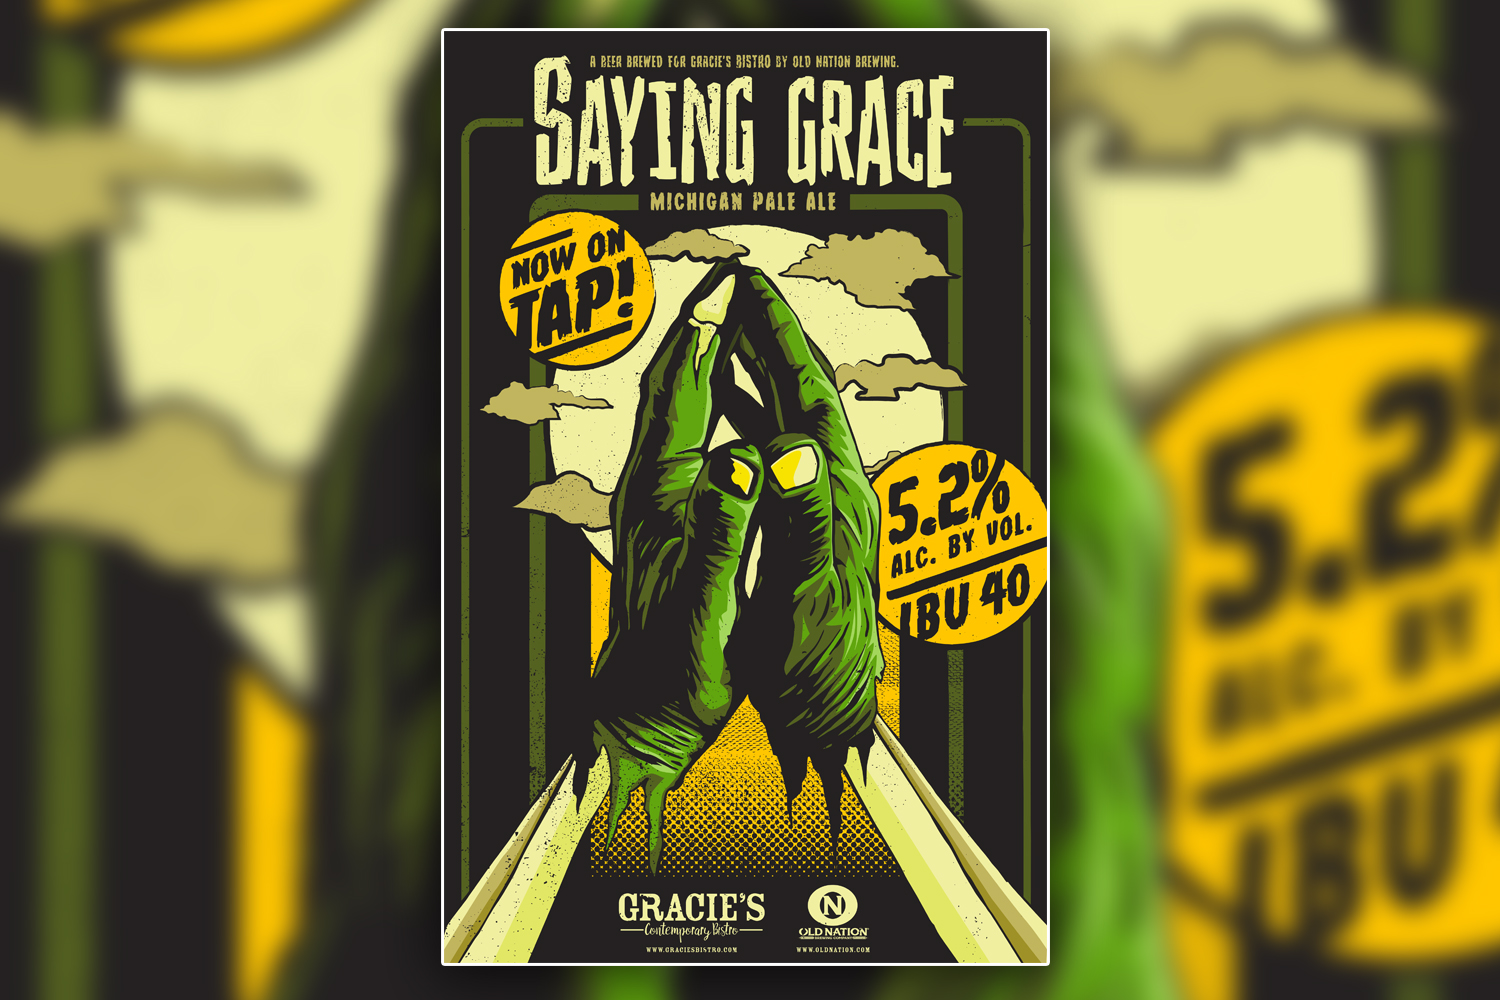 Gracie's Bistro Saying Grace Craft Beer Poster